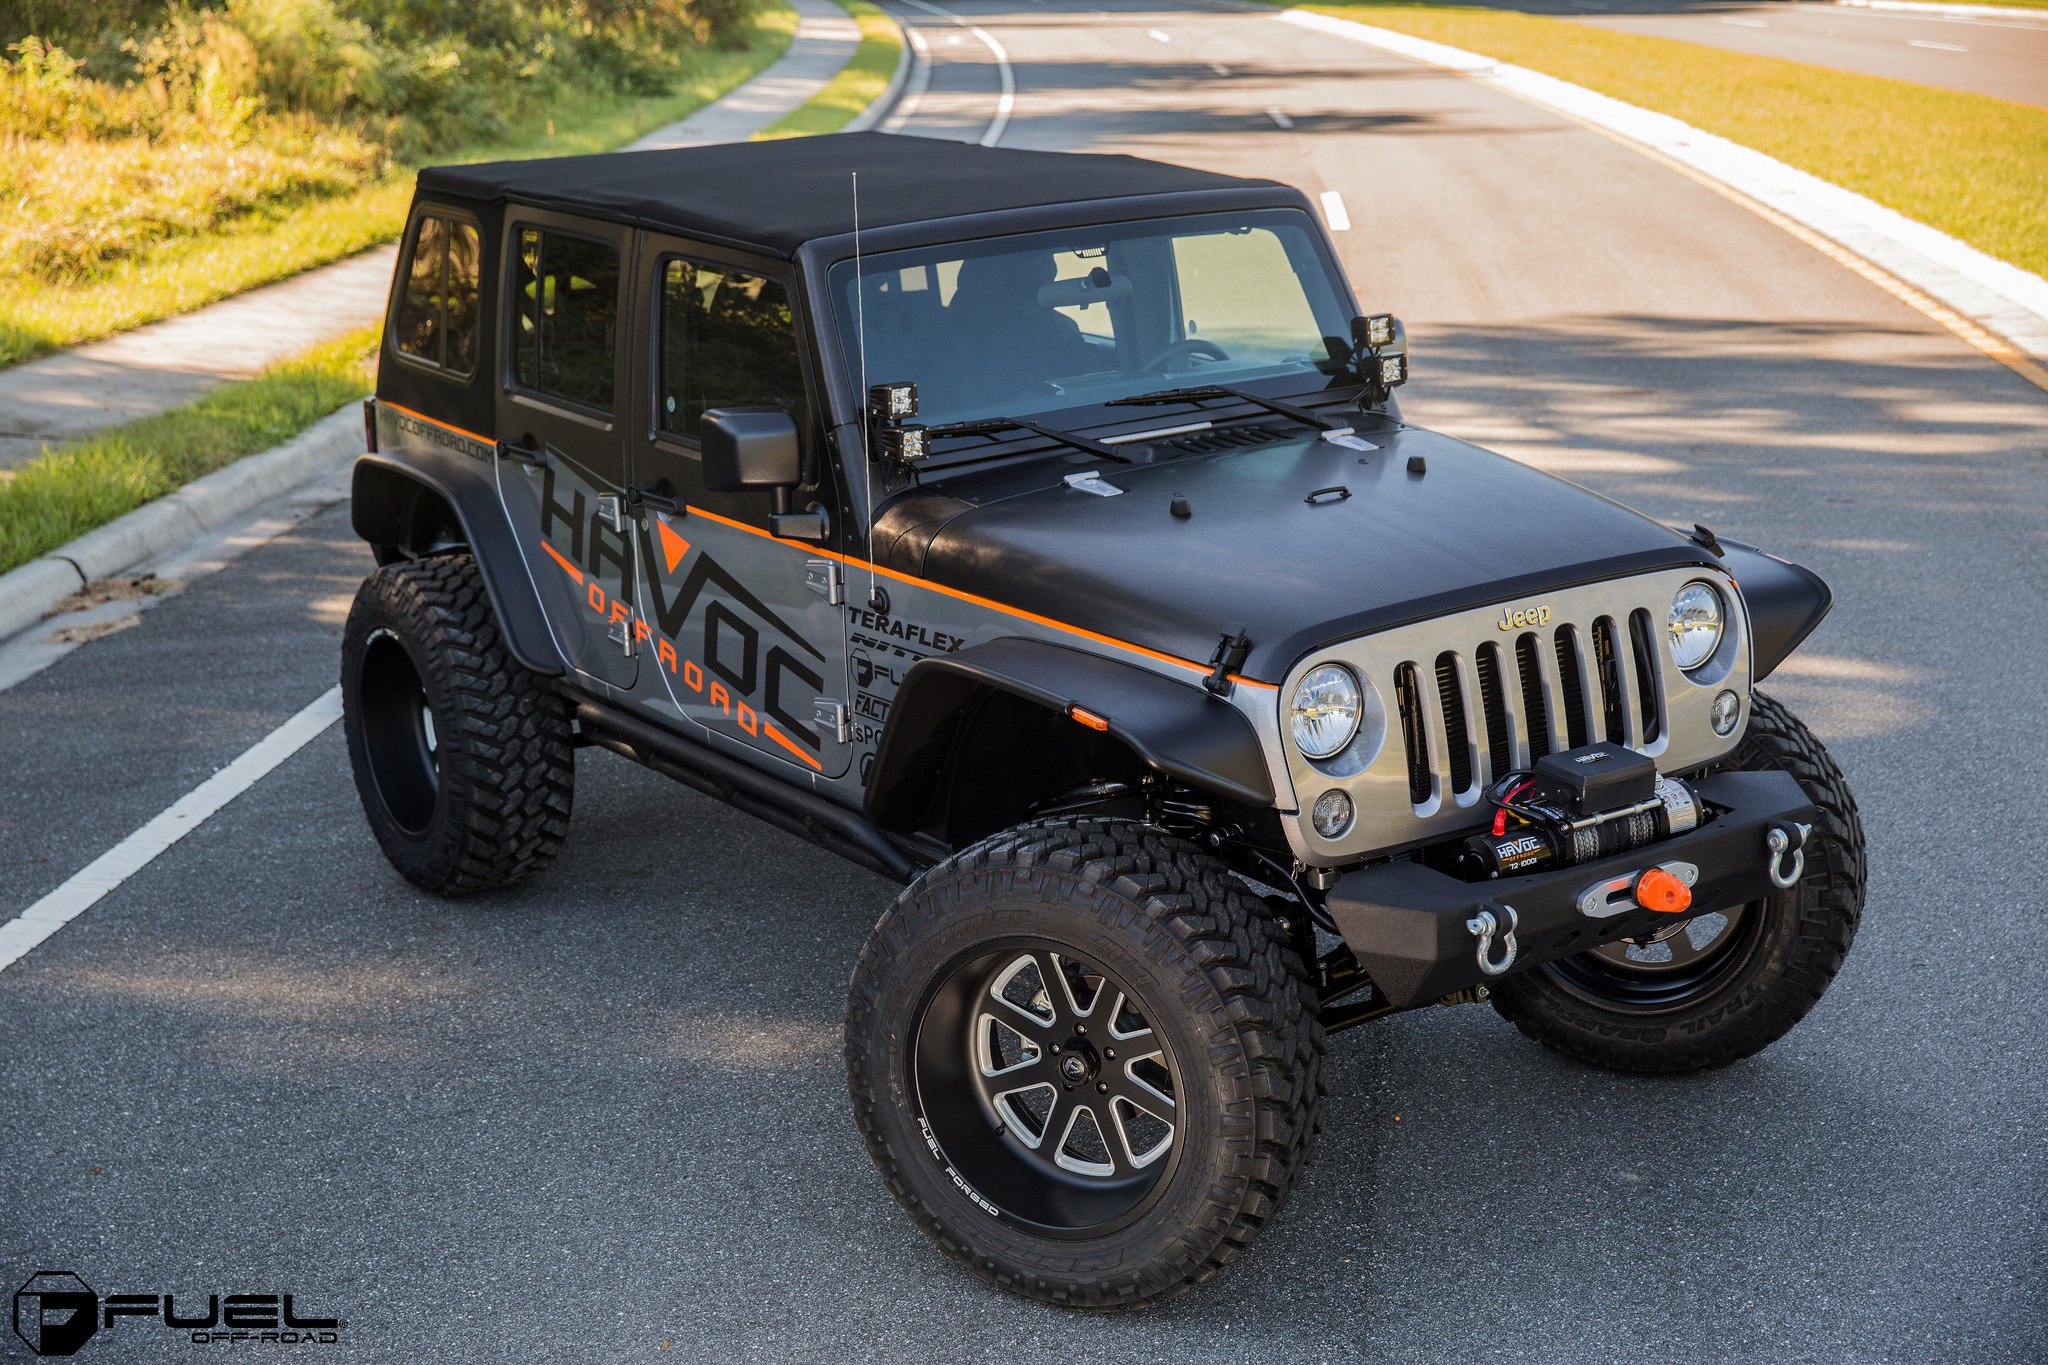 Jku Rocking Deep Dish 22 Inch Fuel Off Road Rims Wrapped With 37 Jeep Jk Tires Black Forged Offroad Wheels On Wrangler Photo By